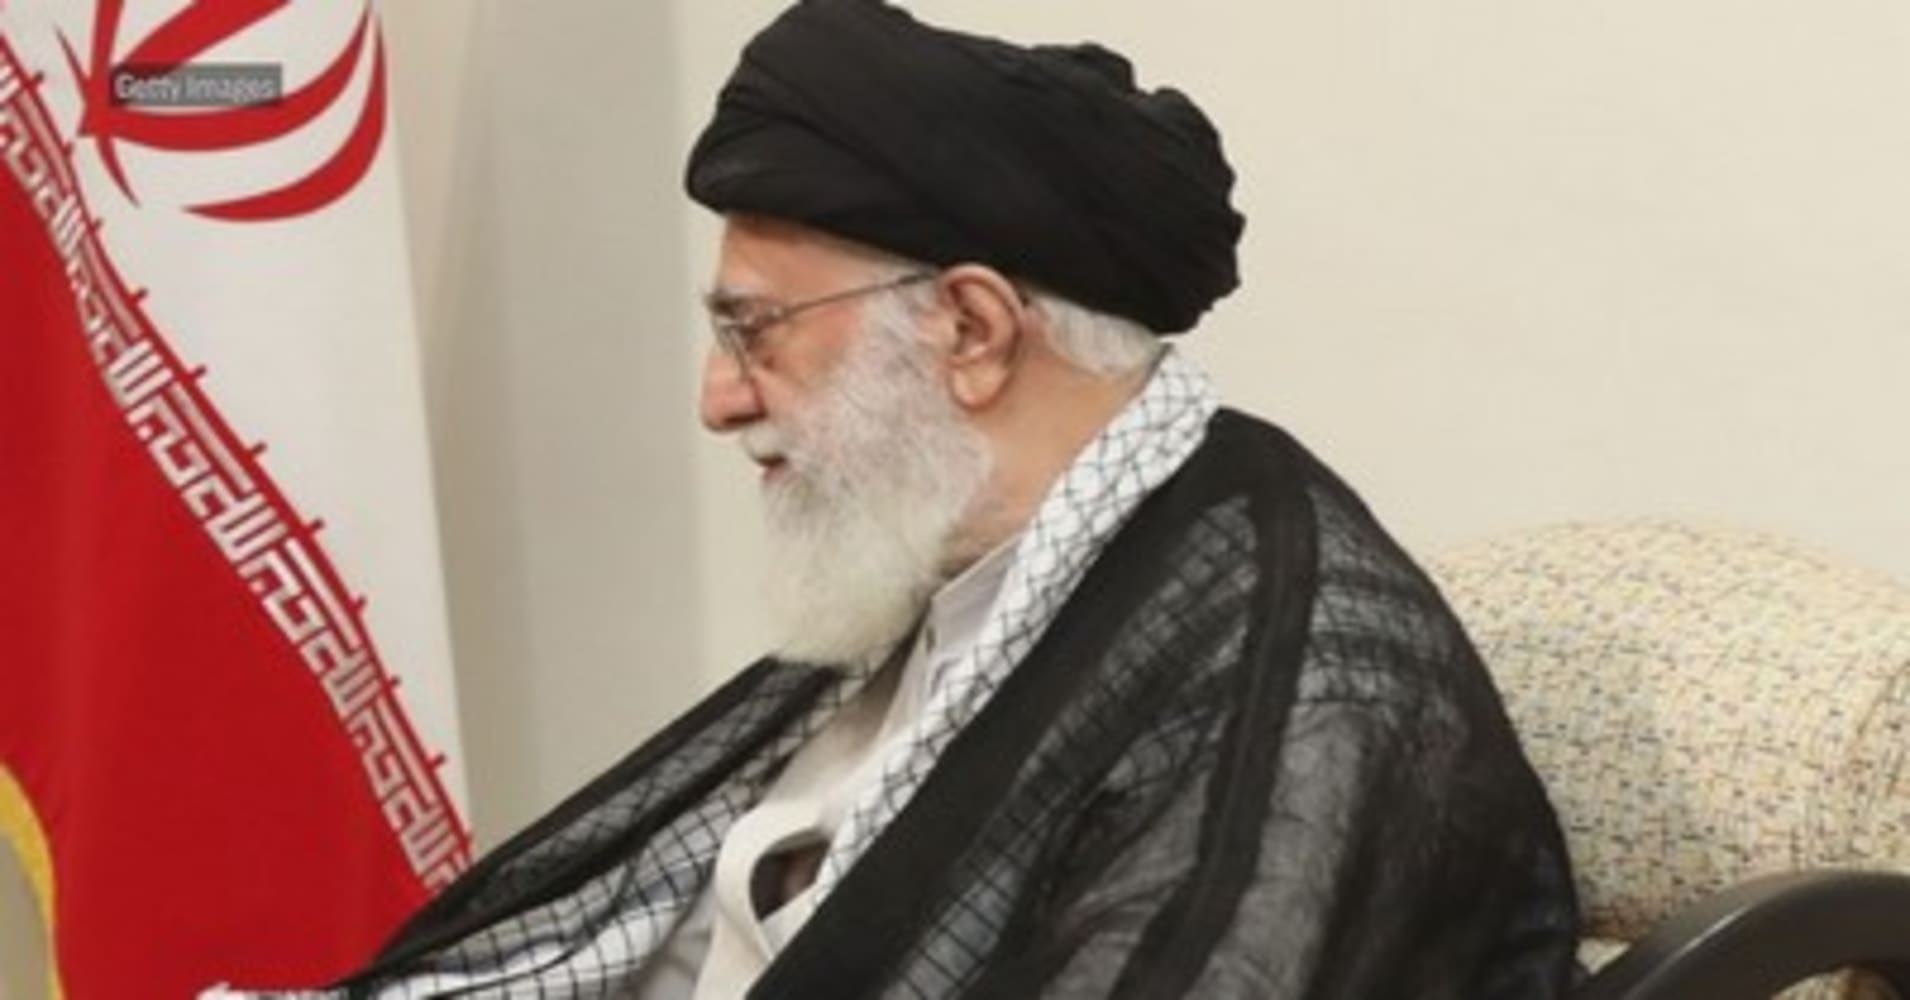 Iran's supreme leader just made 5 tough demands for Europe to save the nuclear deal